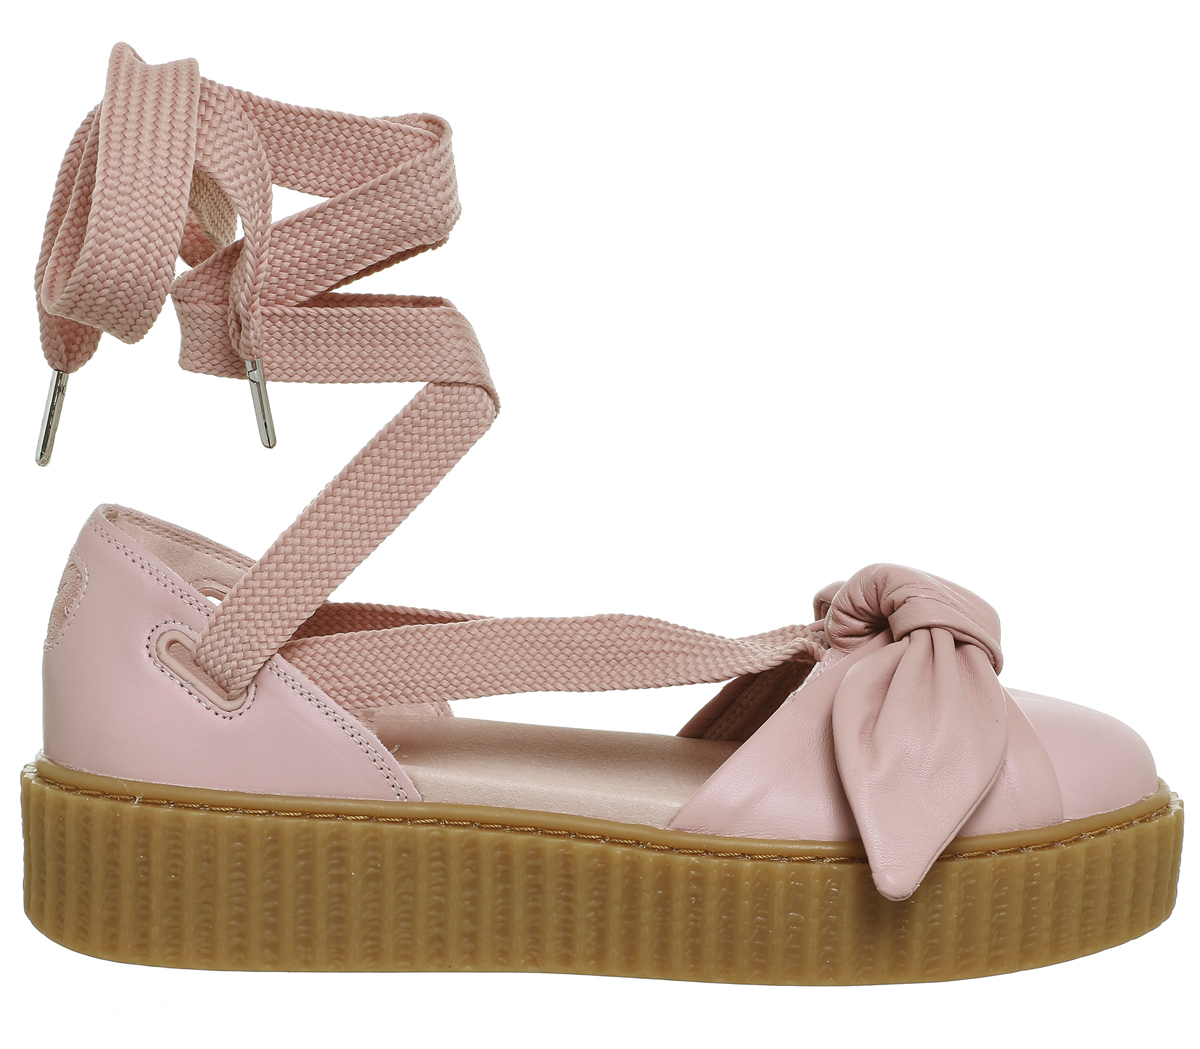 Womens-Puma-Creeper-Ballet-Lace-Pink-Fenty-Sandals thumbnail 6